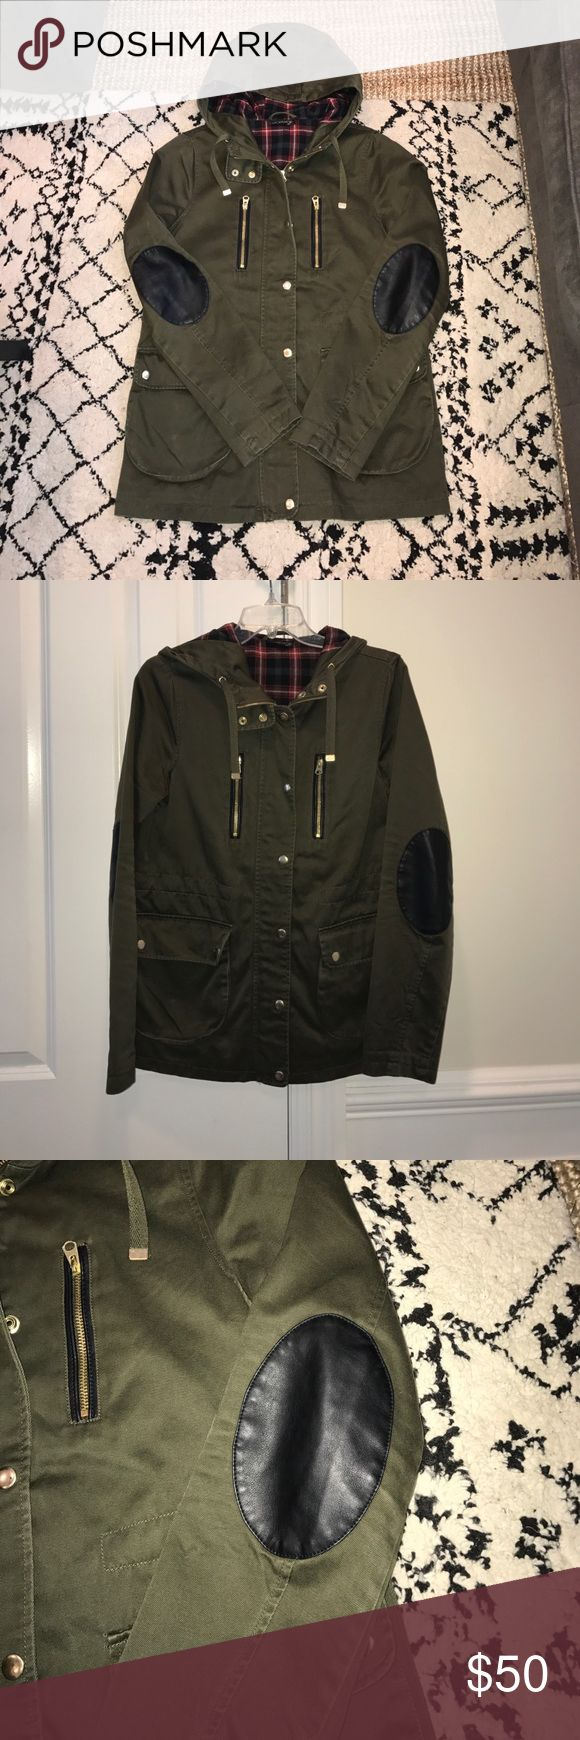 Topshop Elbow Patch Jacket Perfect for spring! Lightweight olive jacket with zip front, gold snap closures, Plaid-lined hood and faux leather elbow patches. 2 zip pockets on body and two larger snap closure pockets at waist. Worn once. Like new condition. Topshop Jackets & Coats Utility Jackets